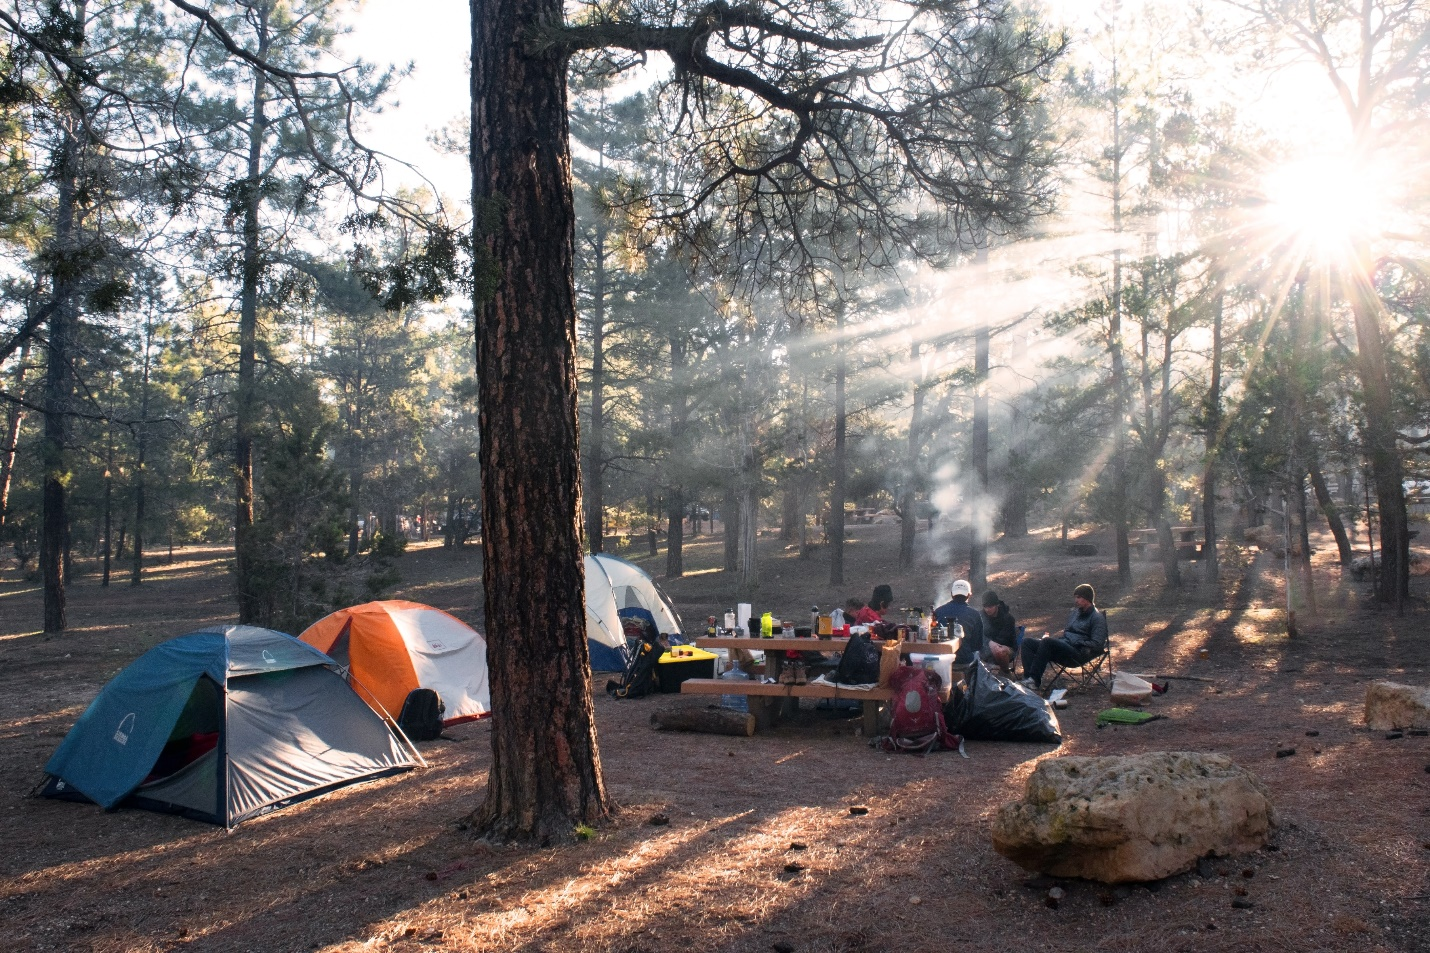 Camping tents in middle of forest